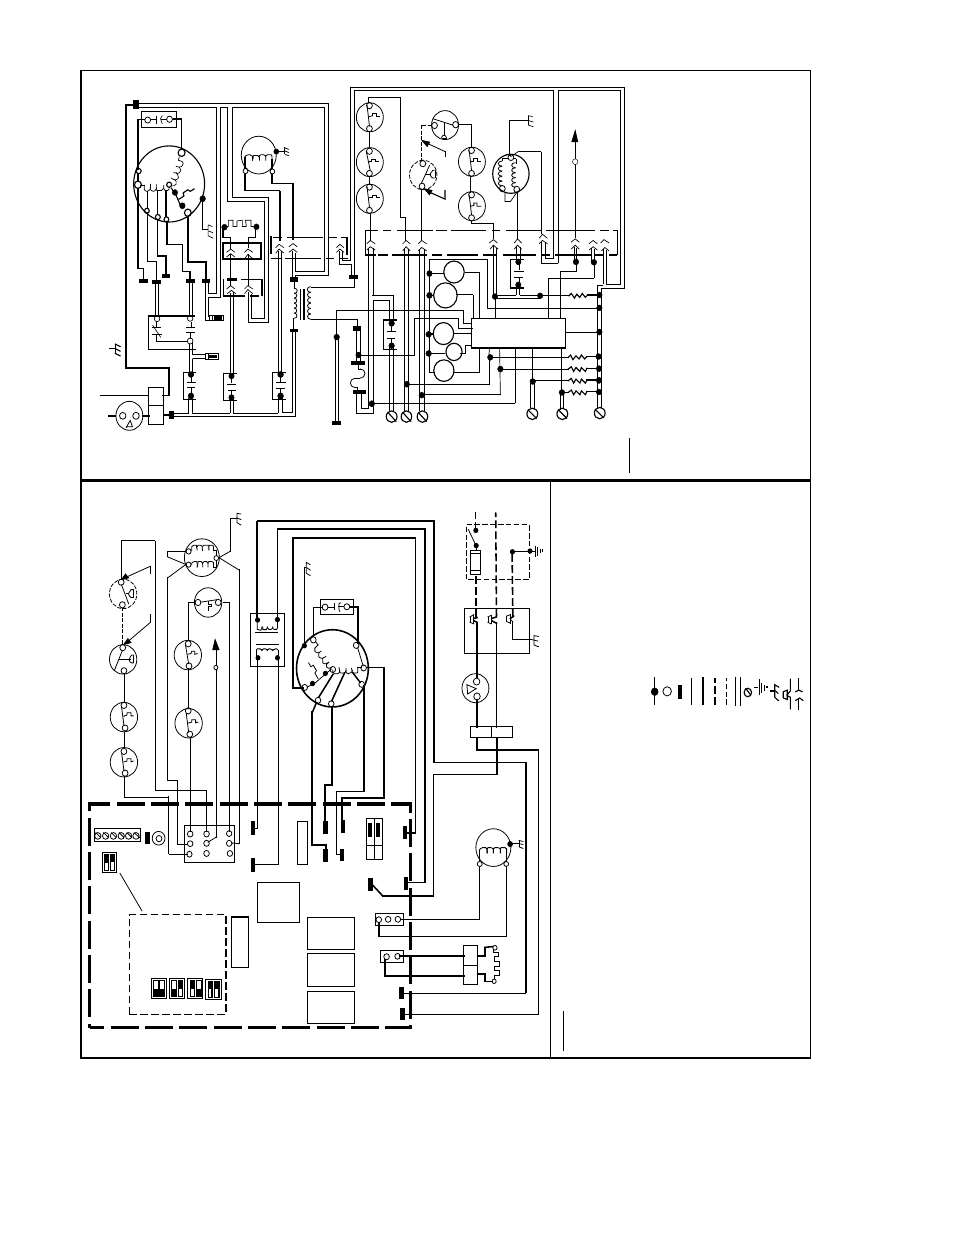 Transformer Wire Diagram Hs Smart Wiring Diagrams Edwards Transformers Fig 12 Unit Ir Id R B Lw Carrier Series 131 Rh Manualsdir Com Single Phase 598